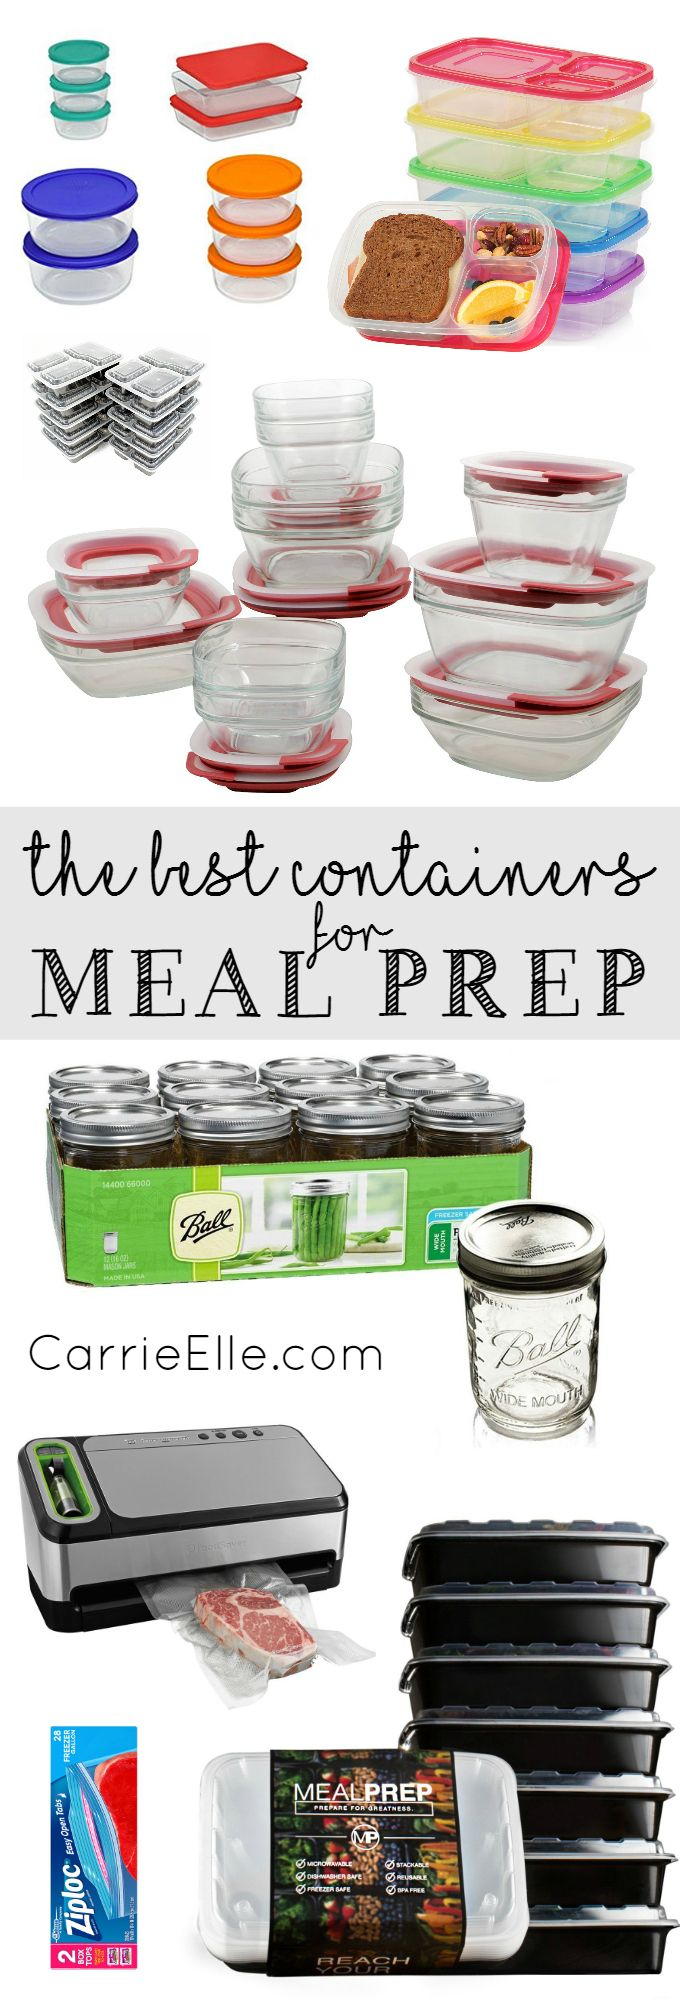 Best Containers for Meal Prep - lots of great containers here to make meal prep so much easier!